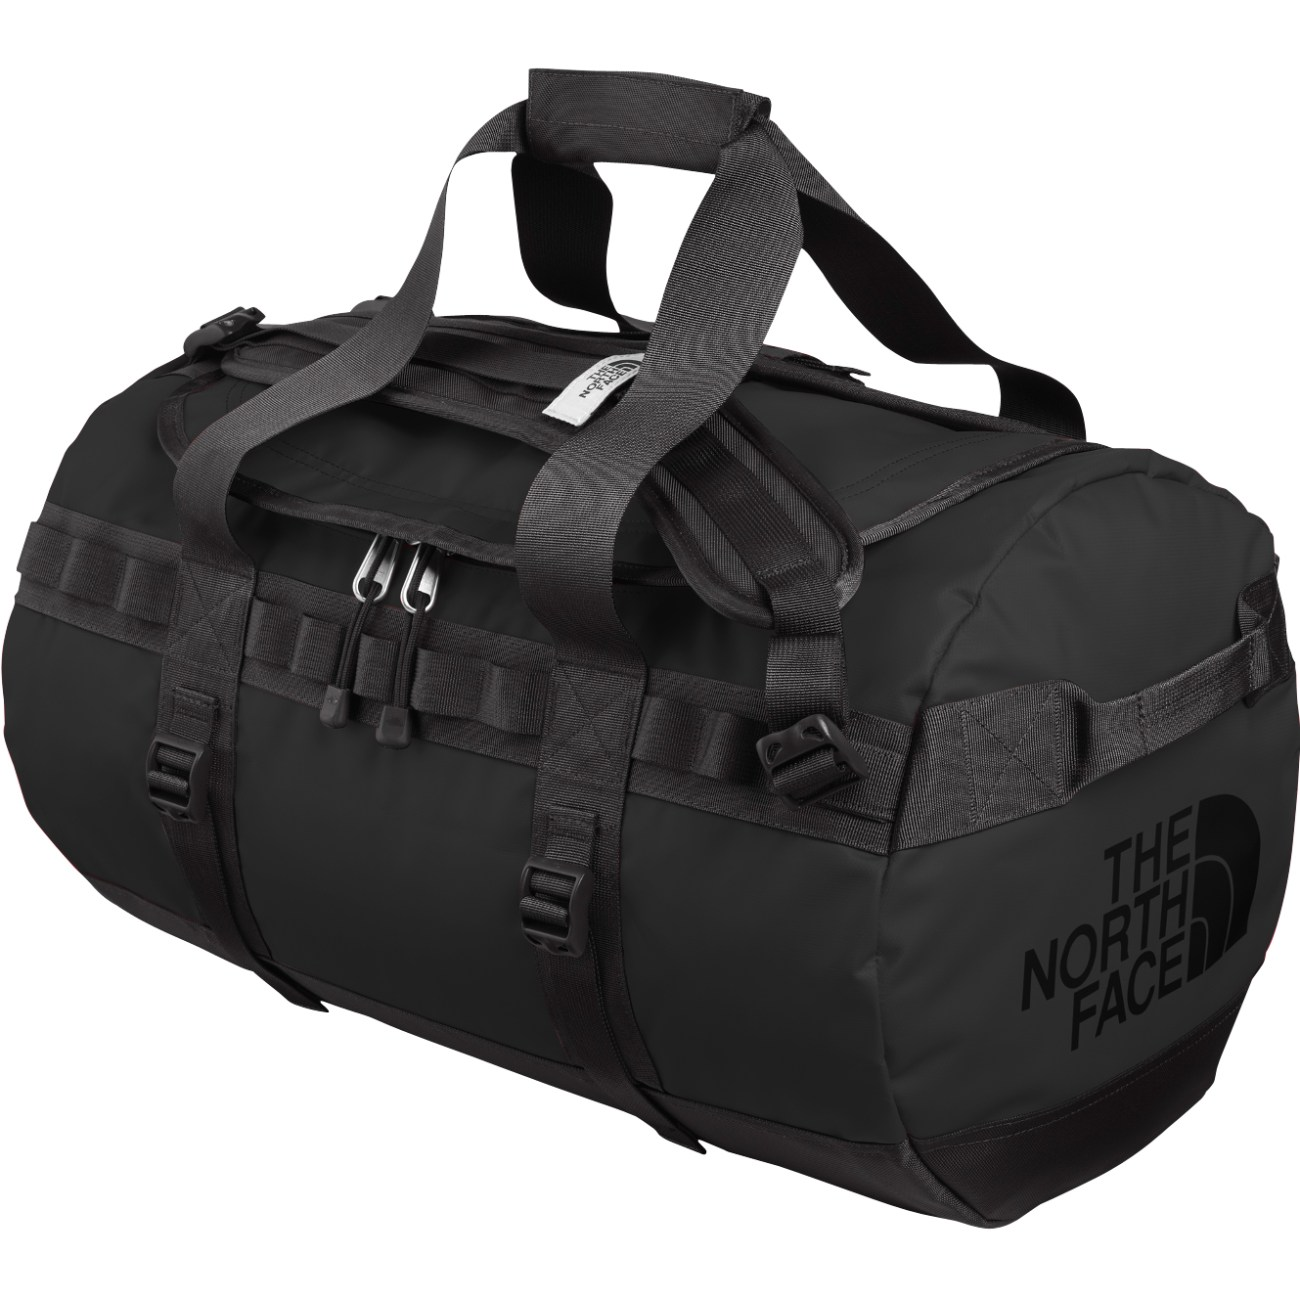 Wiggle | The North Face Base Camp Duffel Bag - Small ...